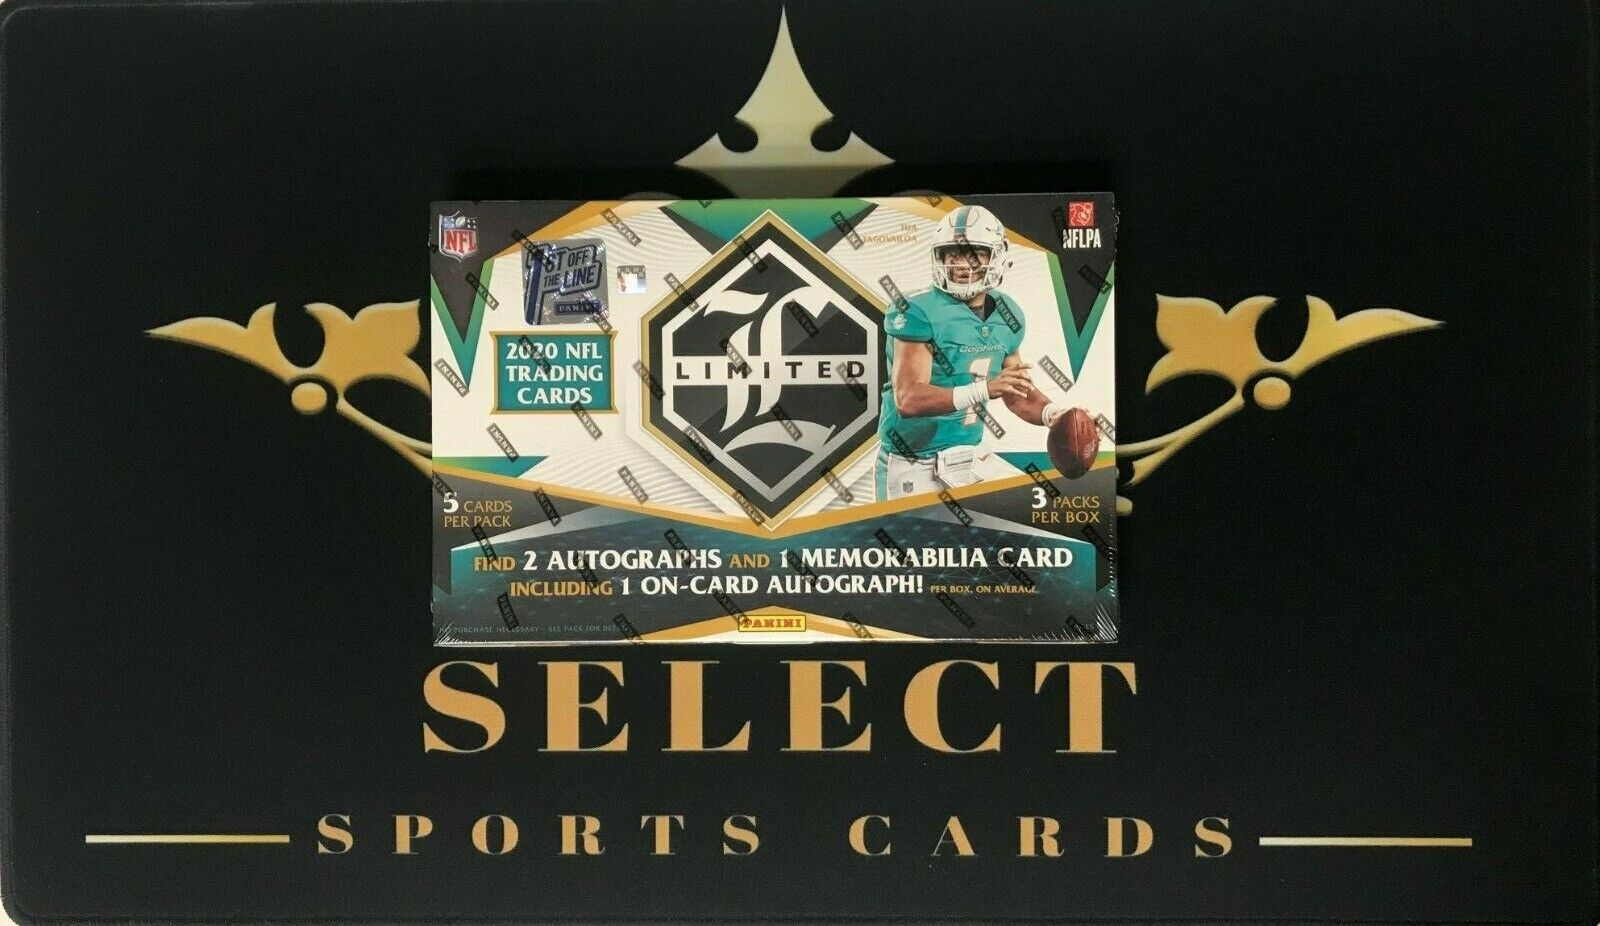 Houston Texans 2020 PANINI NFL LIMITED FIRST OFF THE LINE HOBBY BOX TEAM BREAK - $6.50